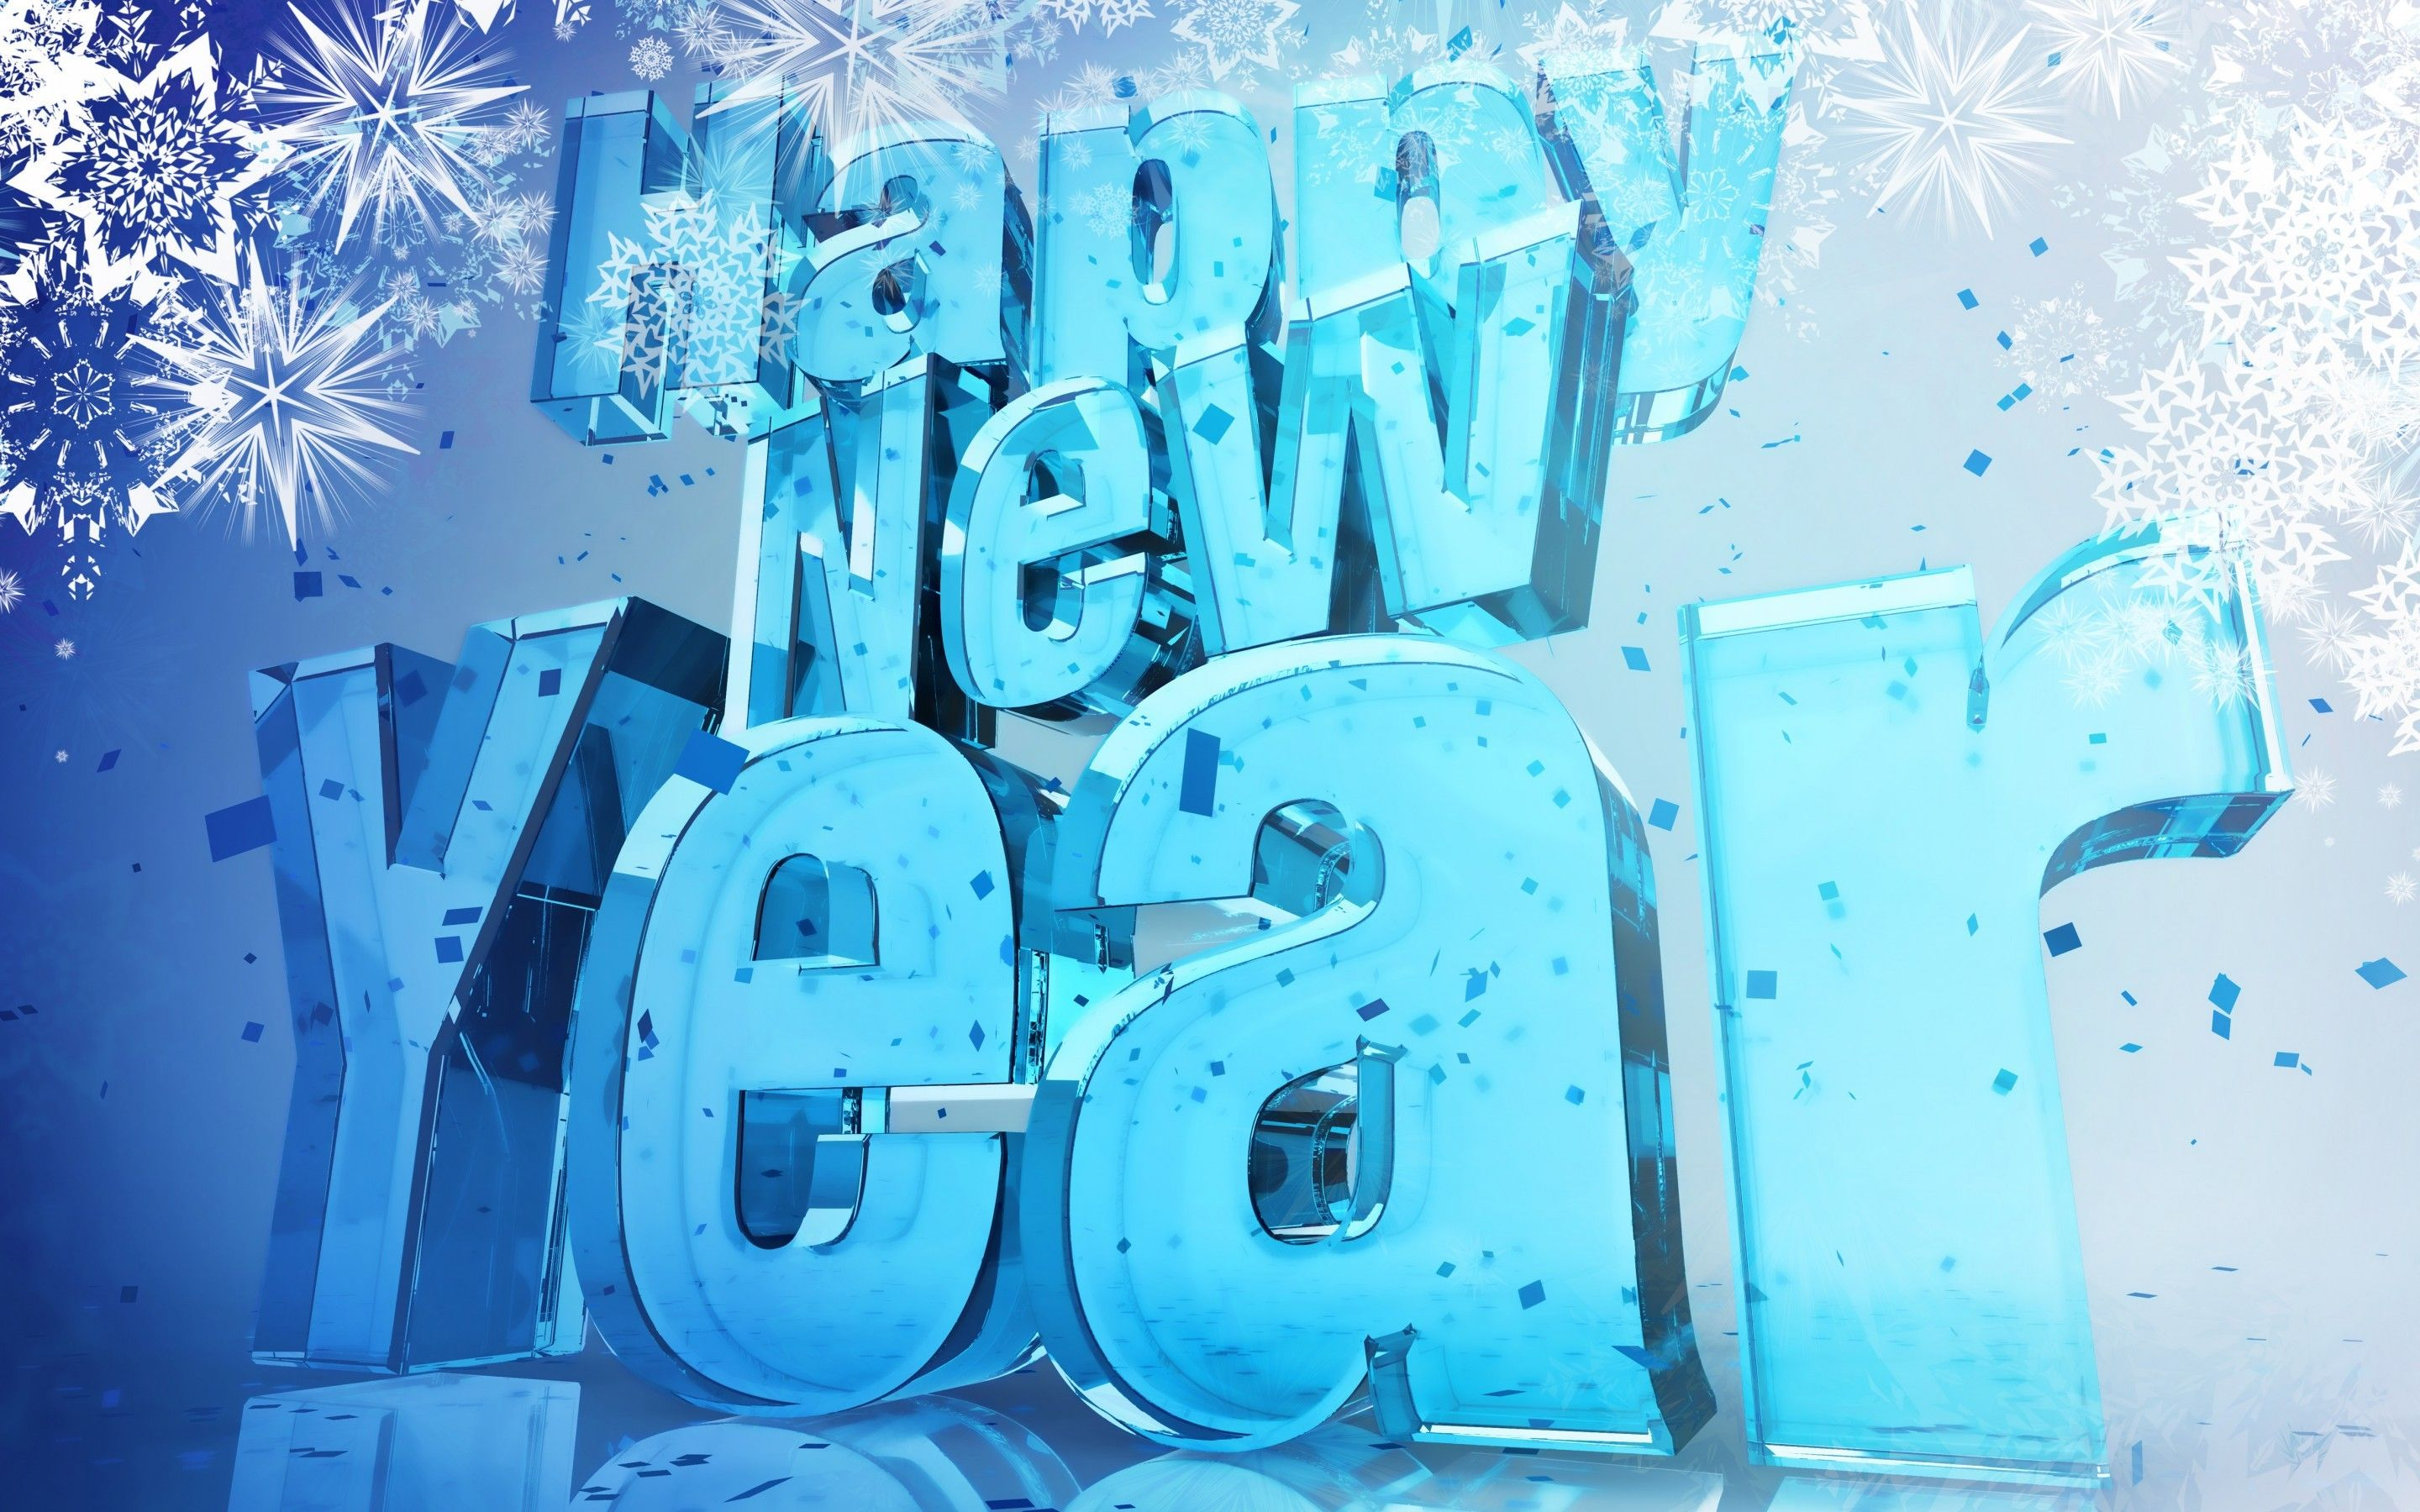 Wallpaper download hd 2017 - Just Download Free Happy New Year 2017 Wishes All The Wishes Are Unique And With